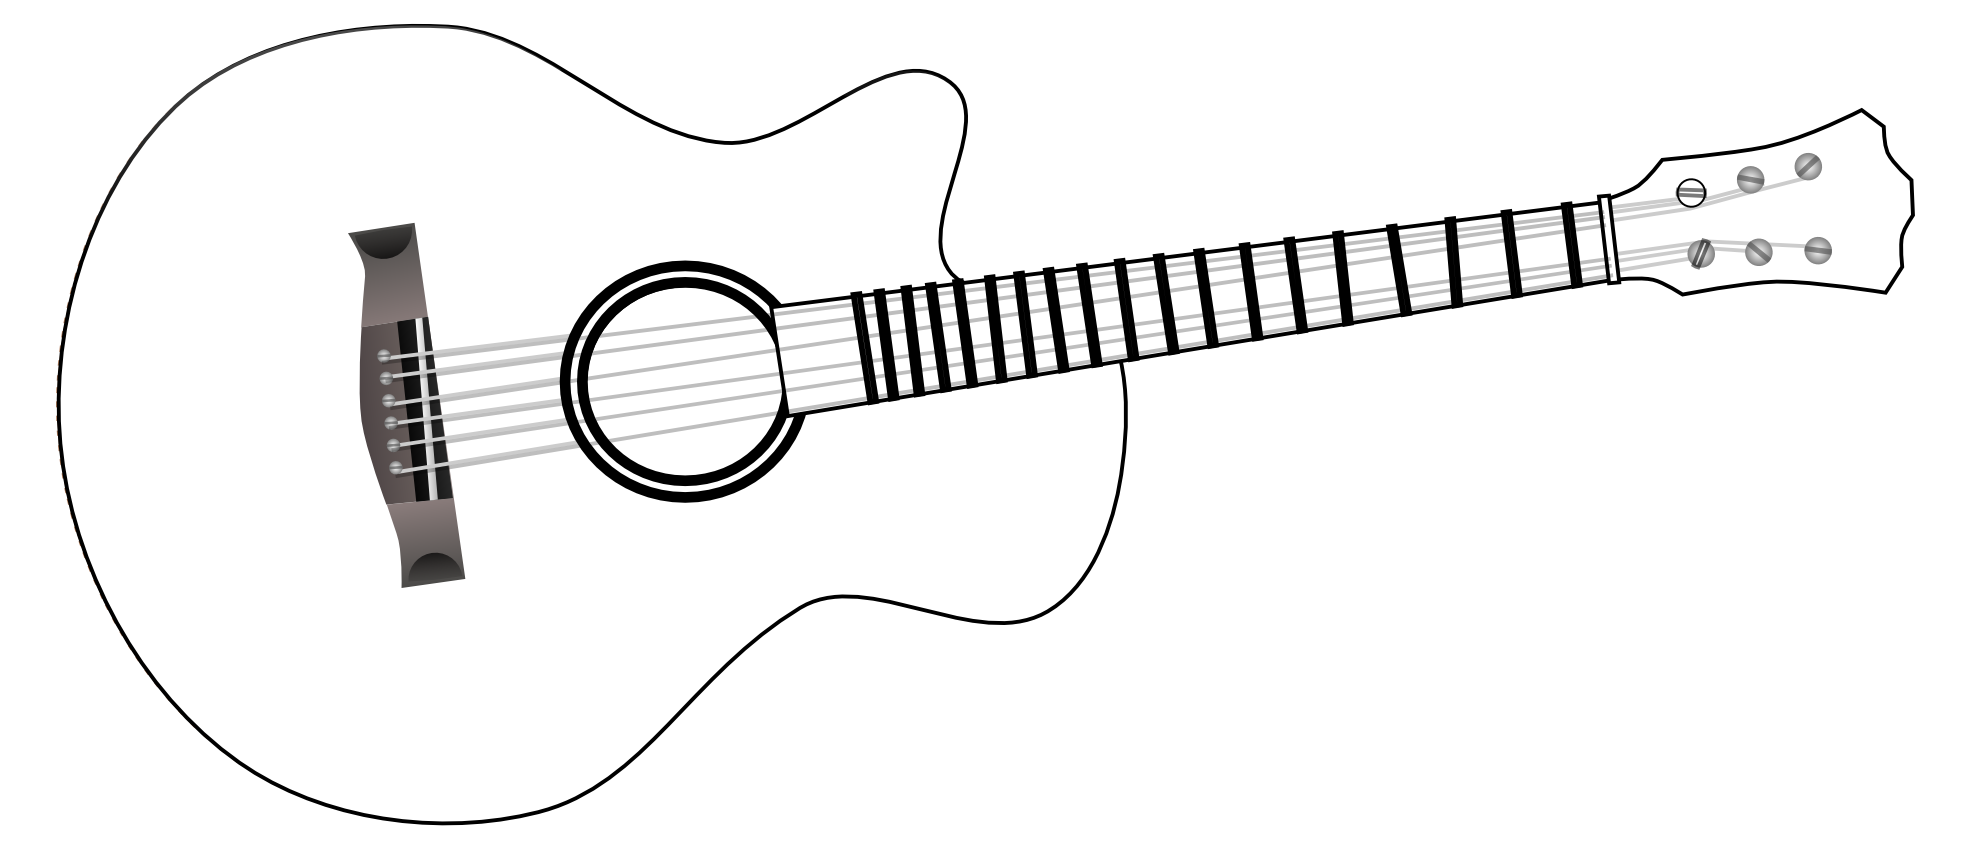 png black and white download Transparent guitars black and white. Free guitar png download